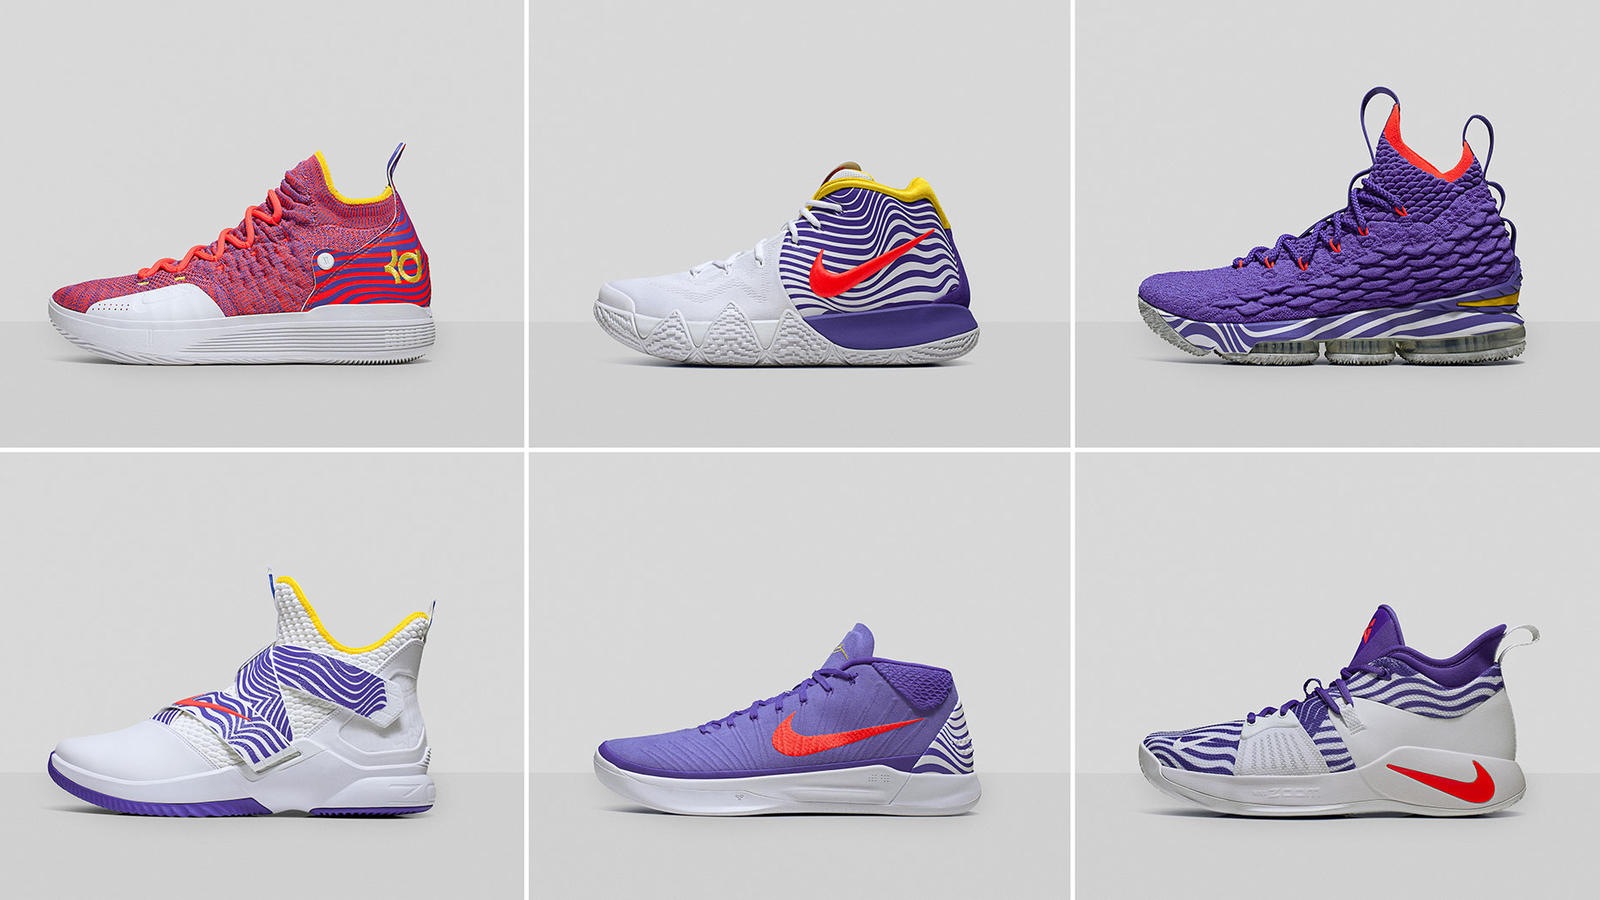 Nike basketball wnba all star 2018 re hd 1600